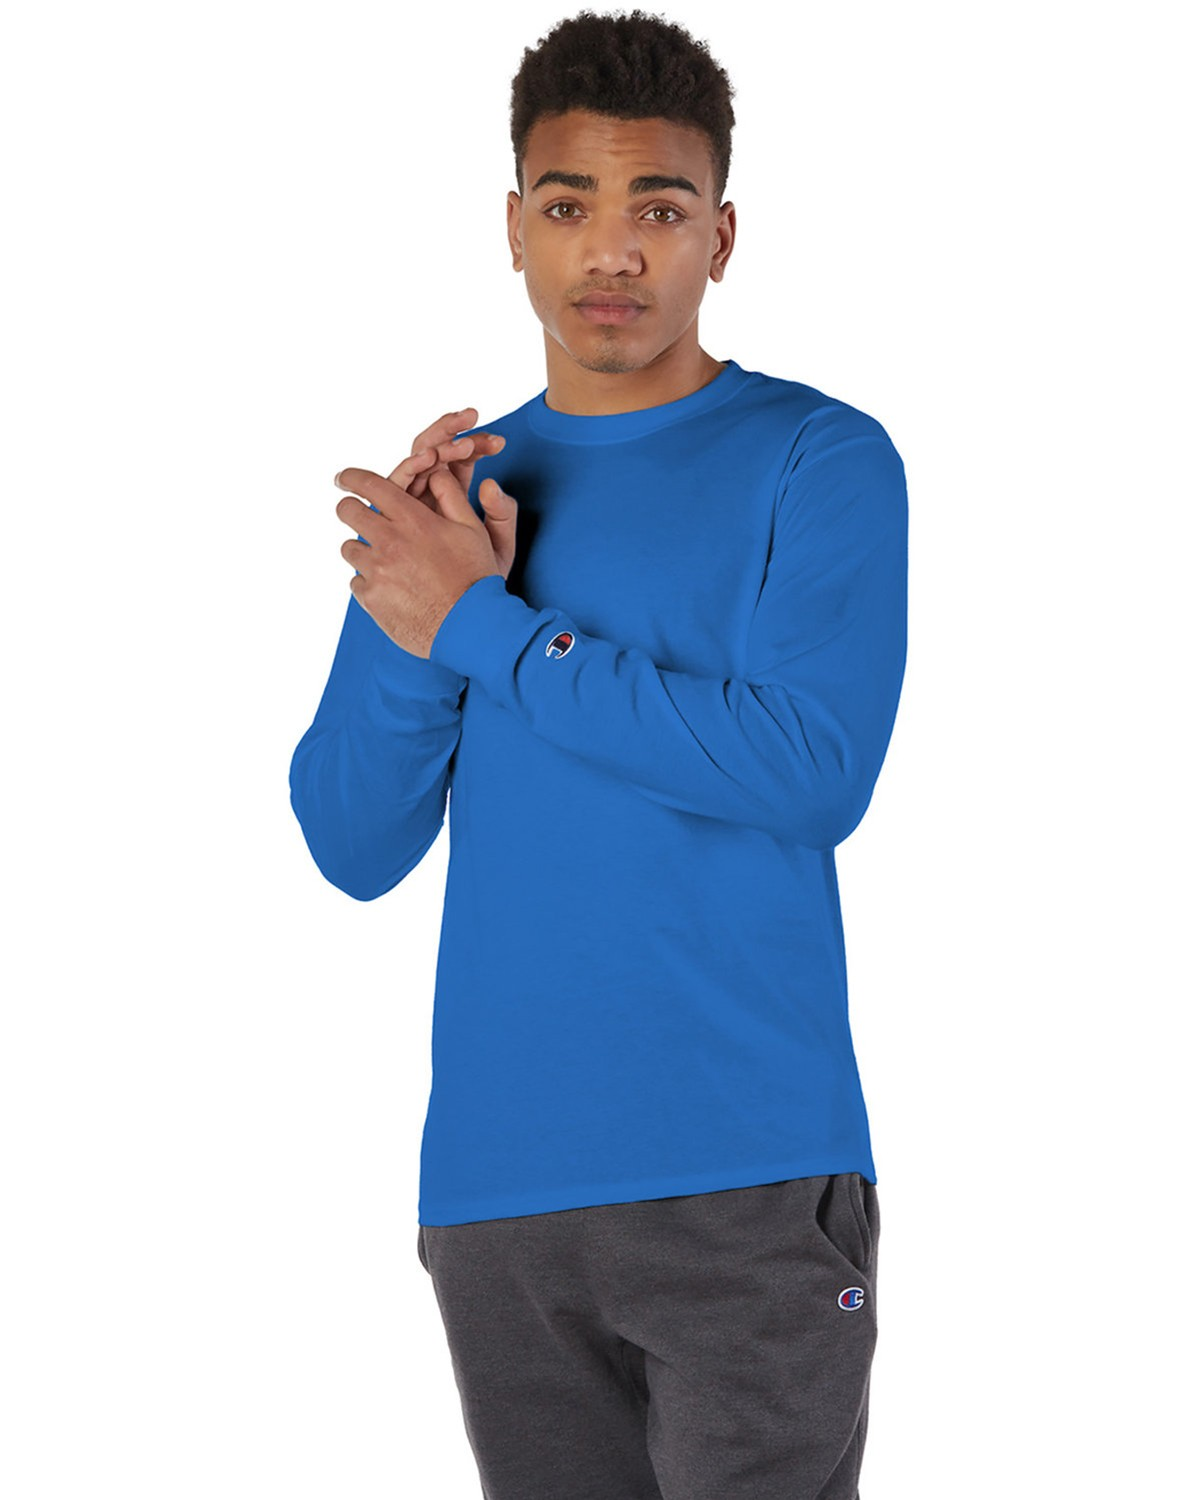 Champion CC8C Long-Sleeve T-Shirt - Royal Blue - M CC8C